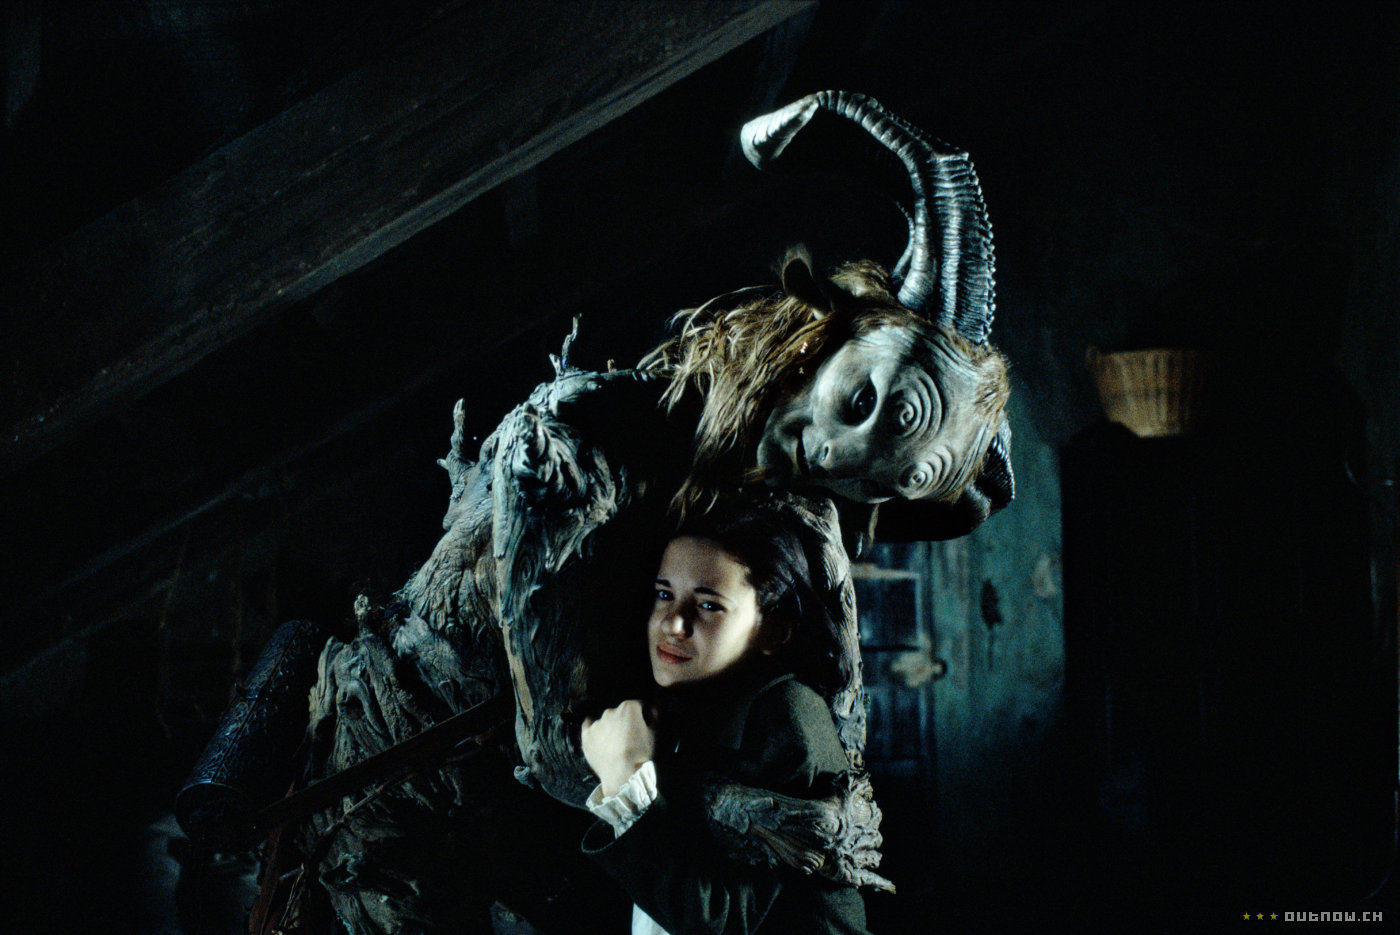 pans labyrinth narrative genre Pan's labyrinth release info panslabyrinth2006bluraydxvax264-primehd english subtitle panslabyrinth2006bluraydxvax264-primehd yts full pan's labyrinth subtitles list comments you must be logged in to comment.